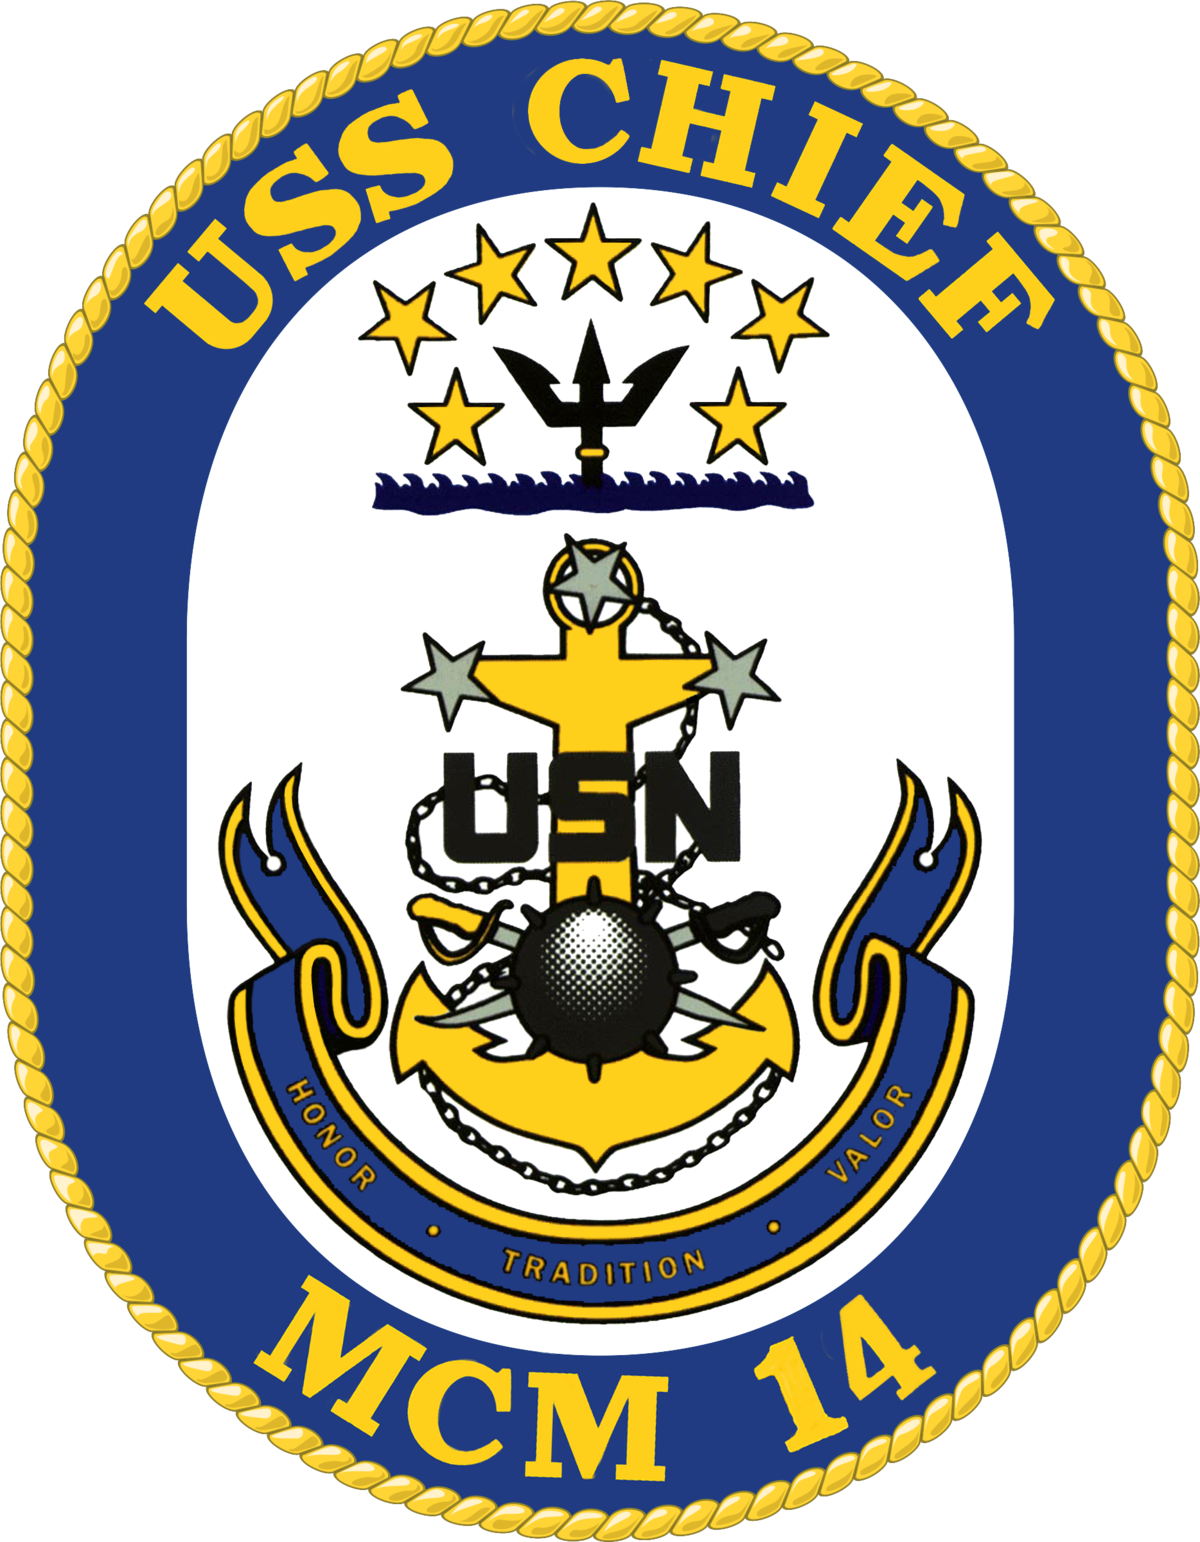 Uss mcm wikipedia . Clipart anchor chief navy